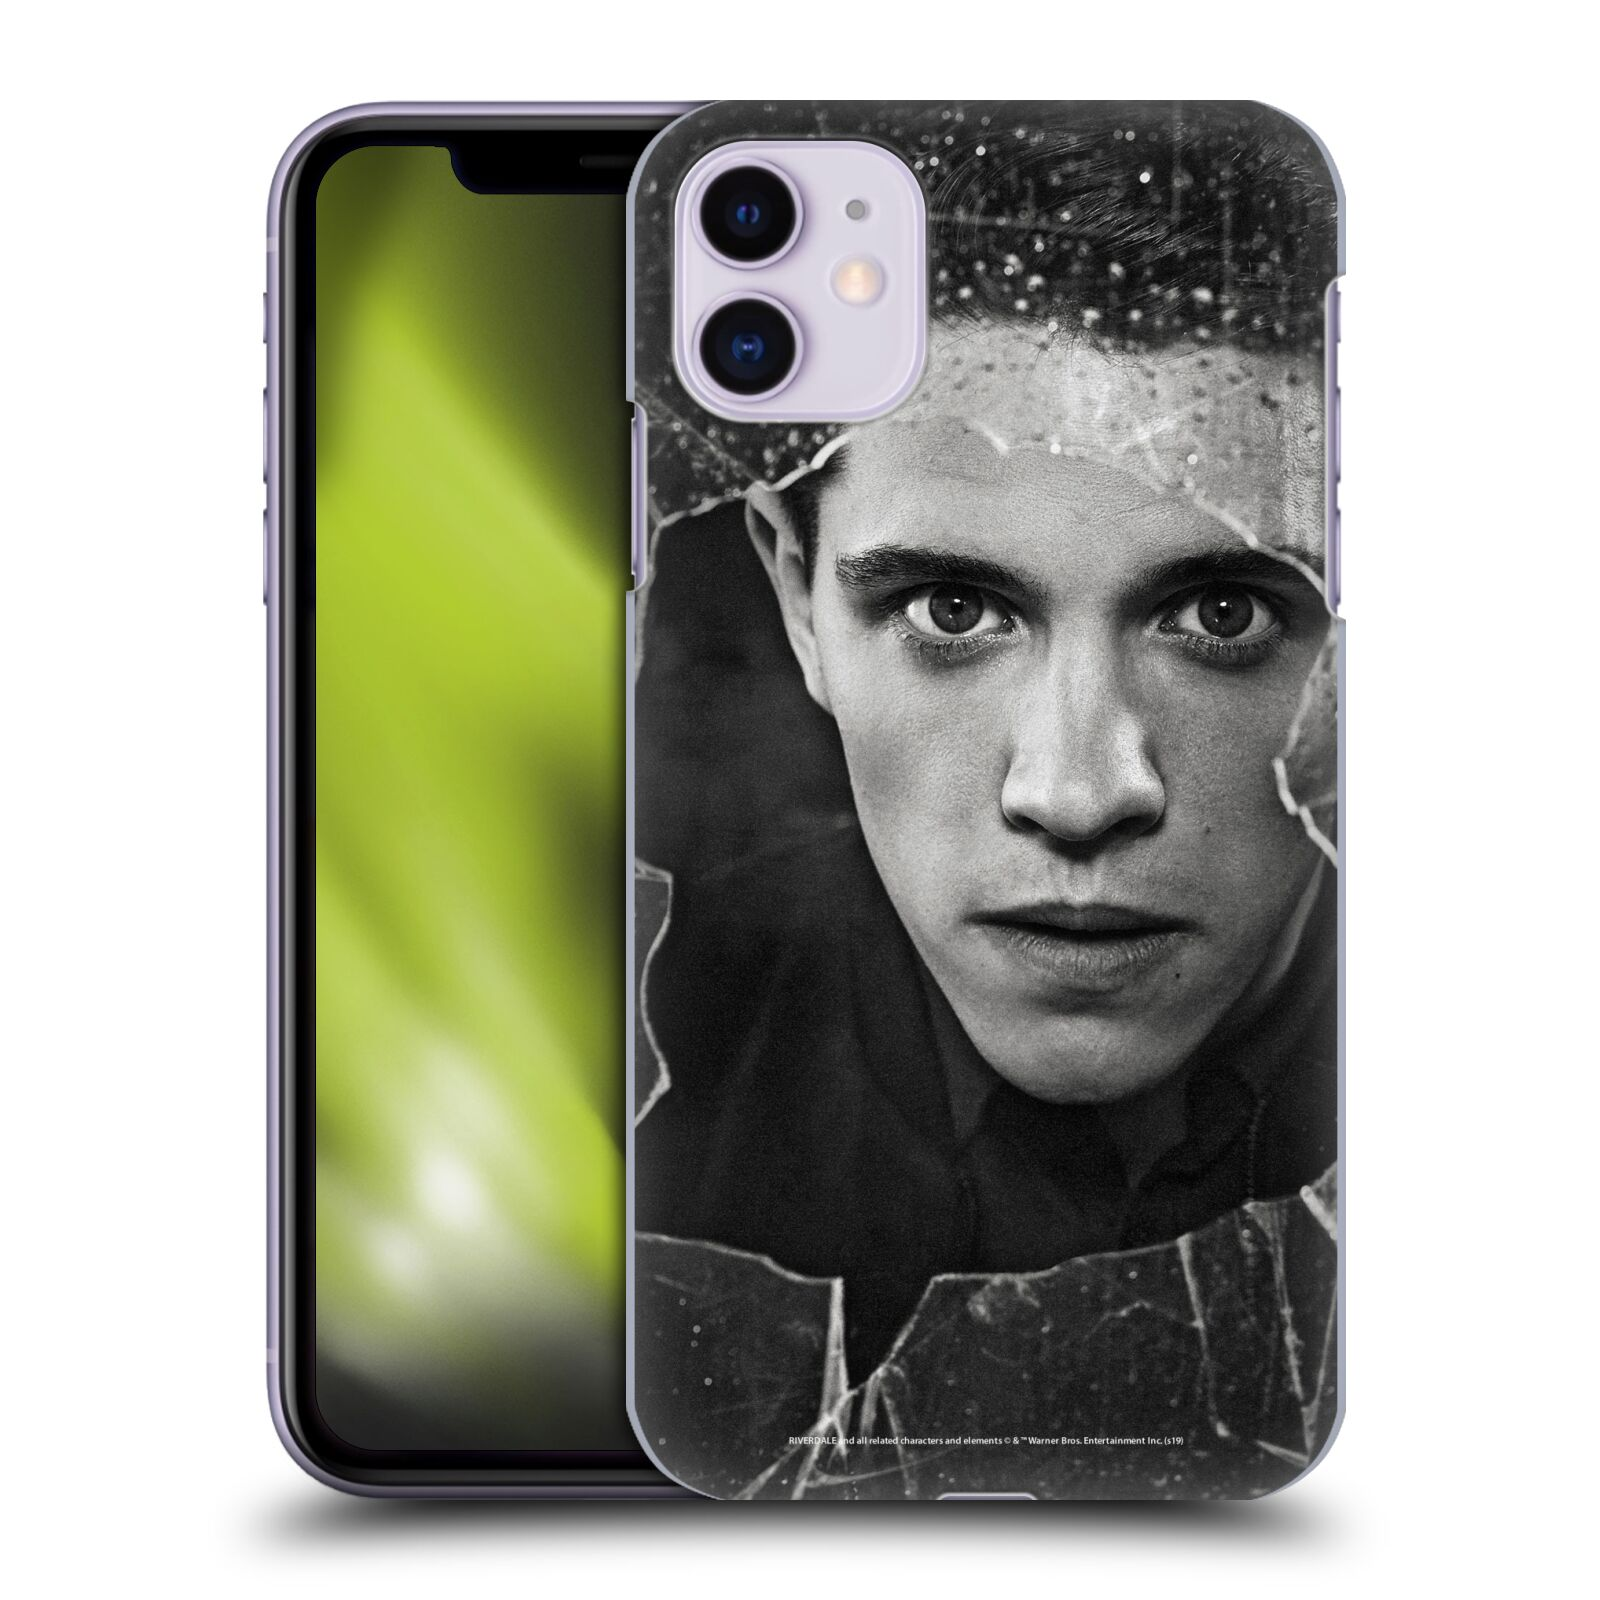 Official Riverdale Broken Glass Portraits Kevin Keller Back Case for Apple iPhone 11